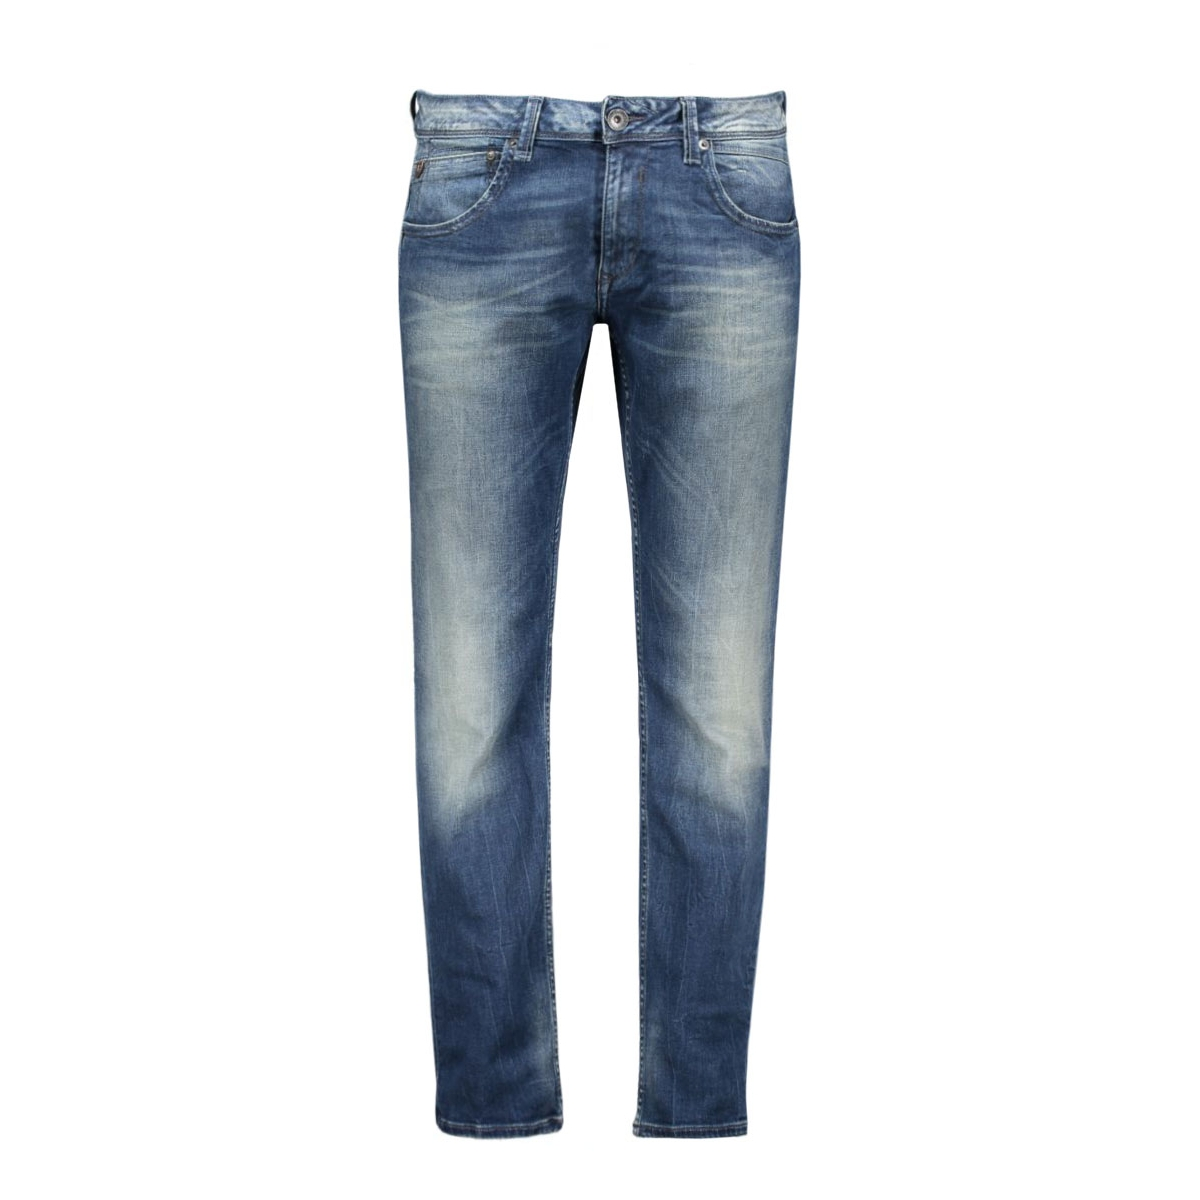 610/32 russo garcia jeans 1456 med used